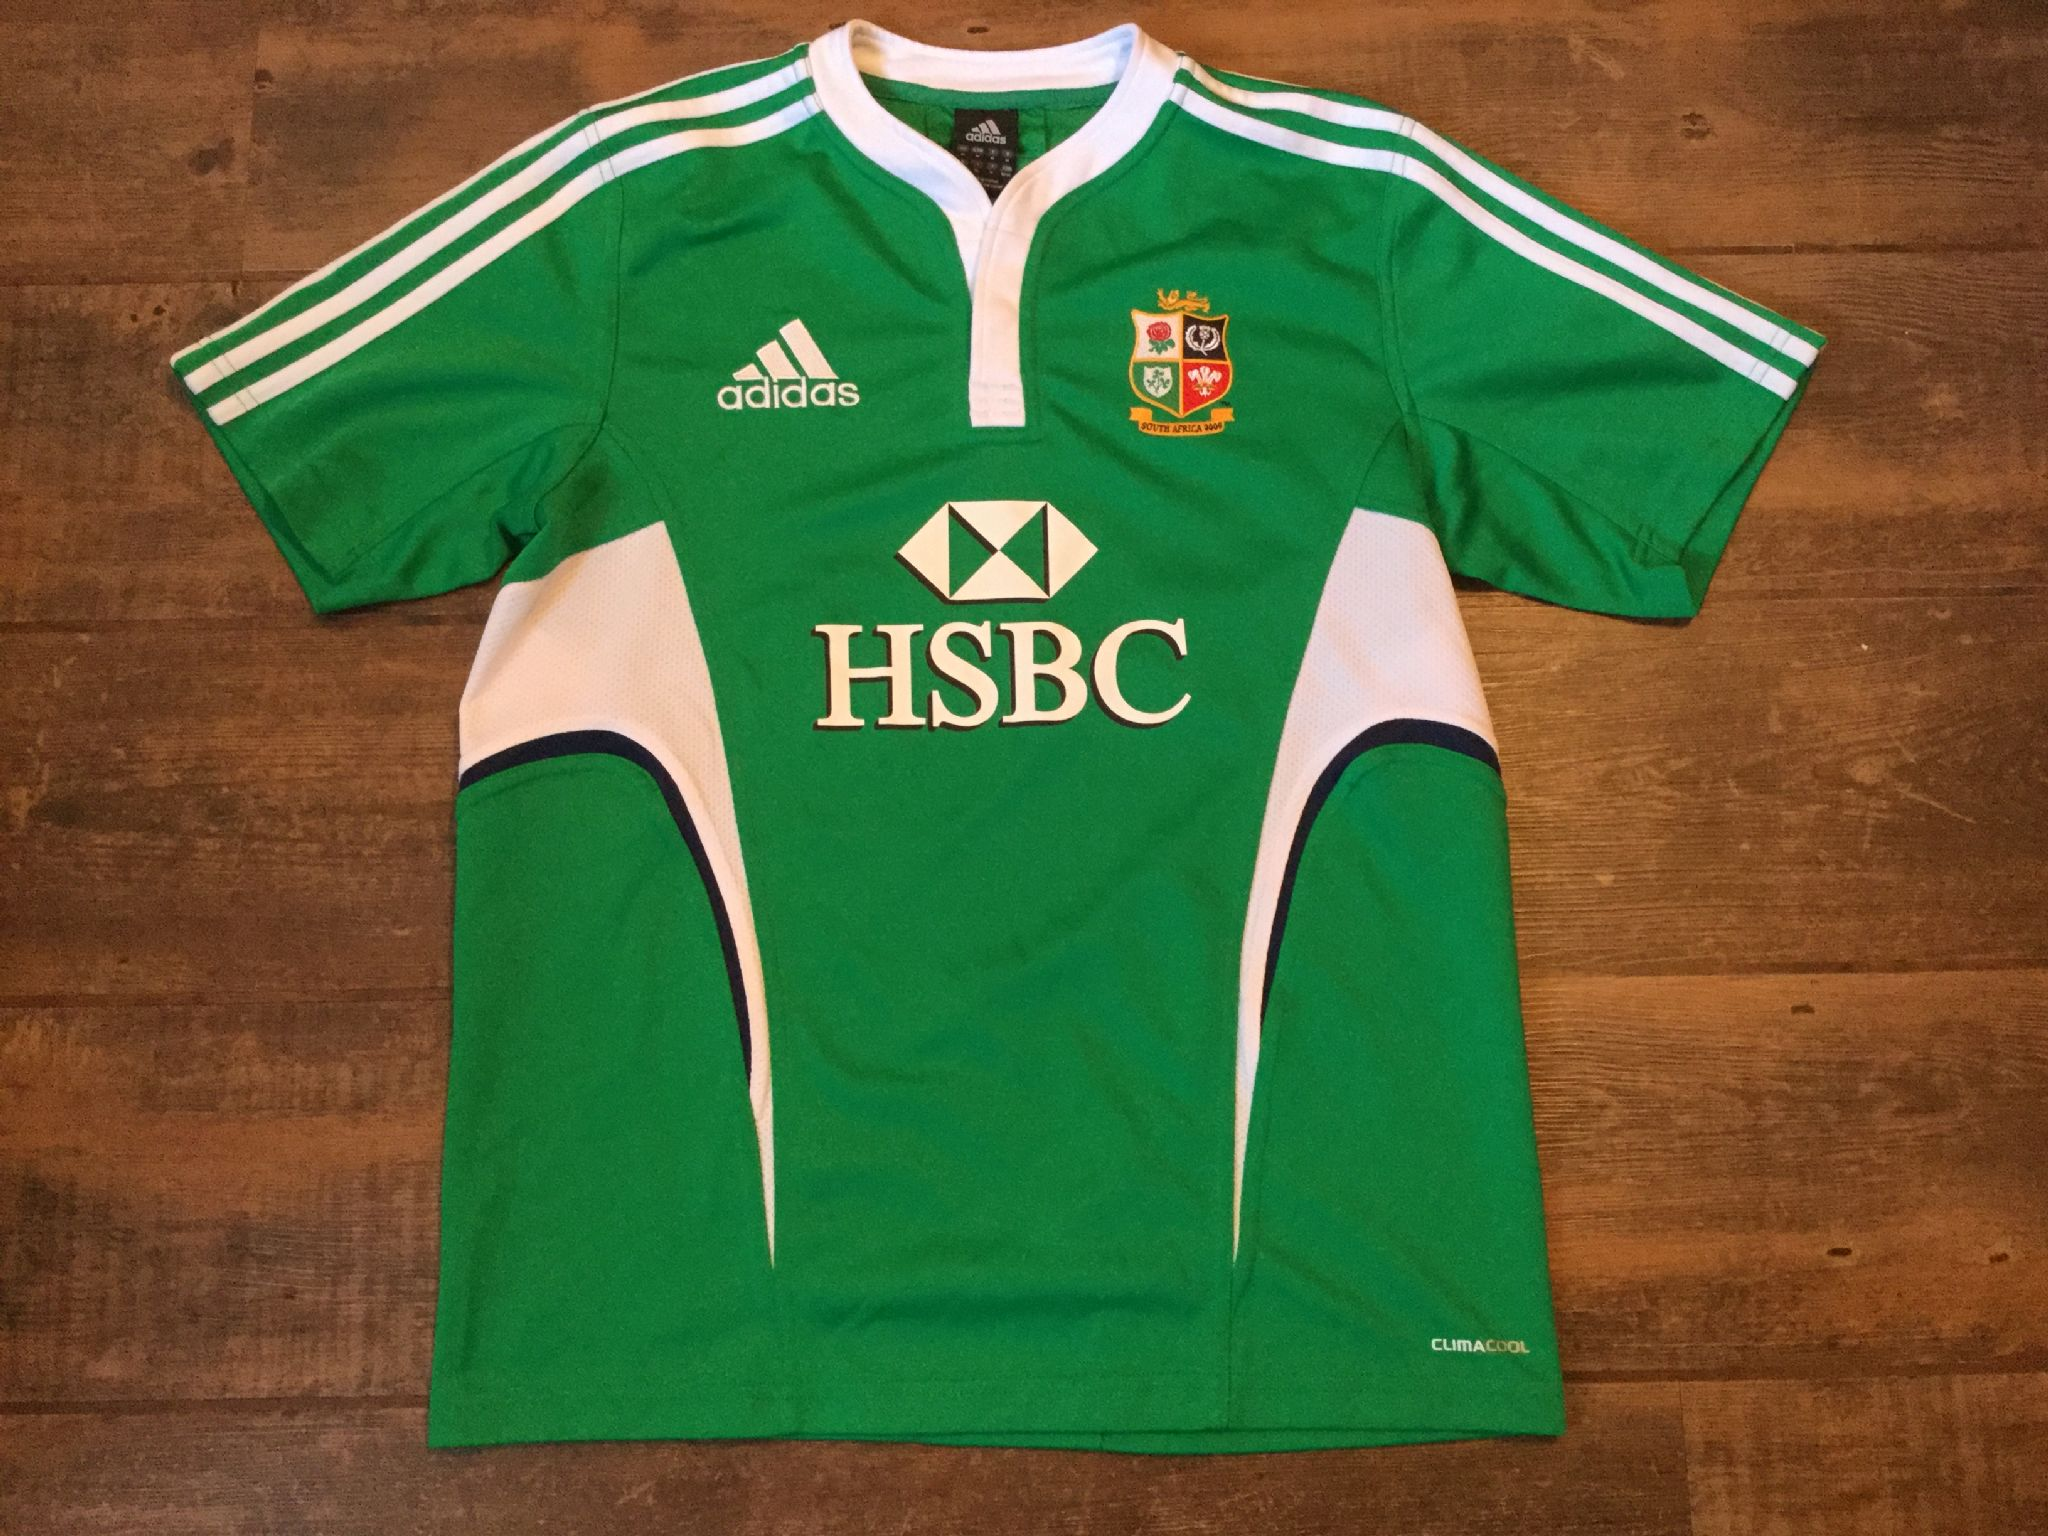 ed327eb8fe8 Classic Rugby Shirts | 2009 British & Irish Lions Vintage Old Jerseys